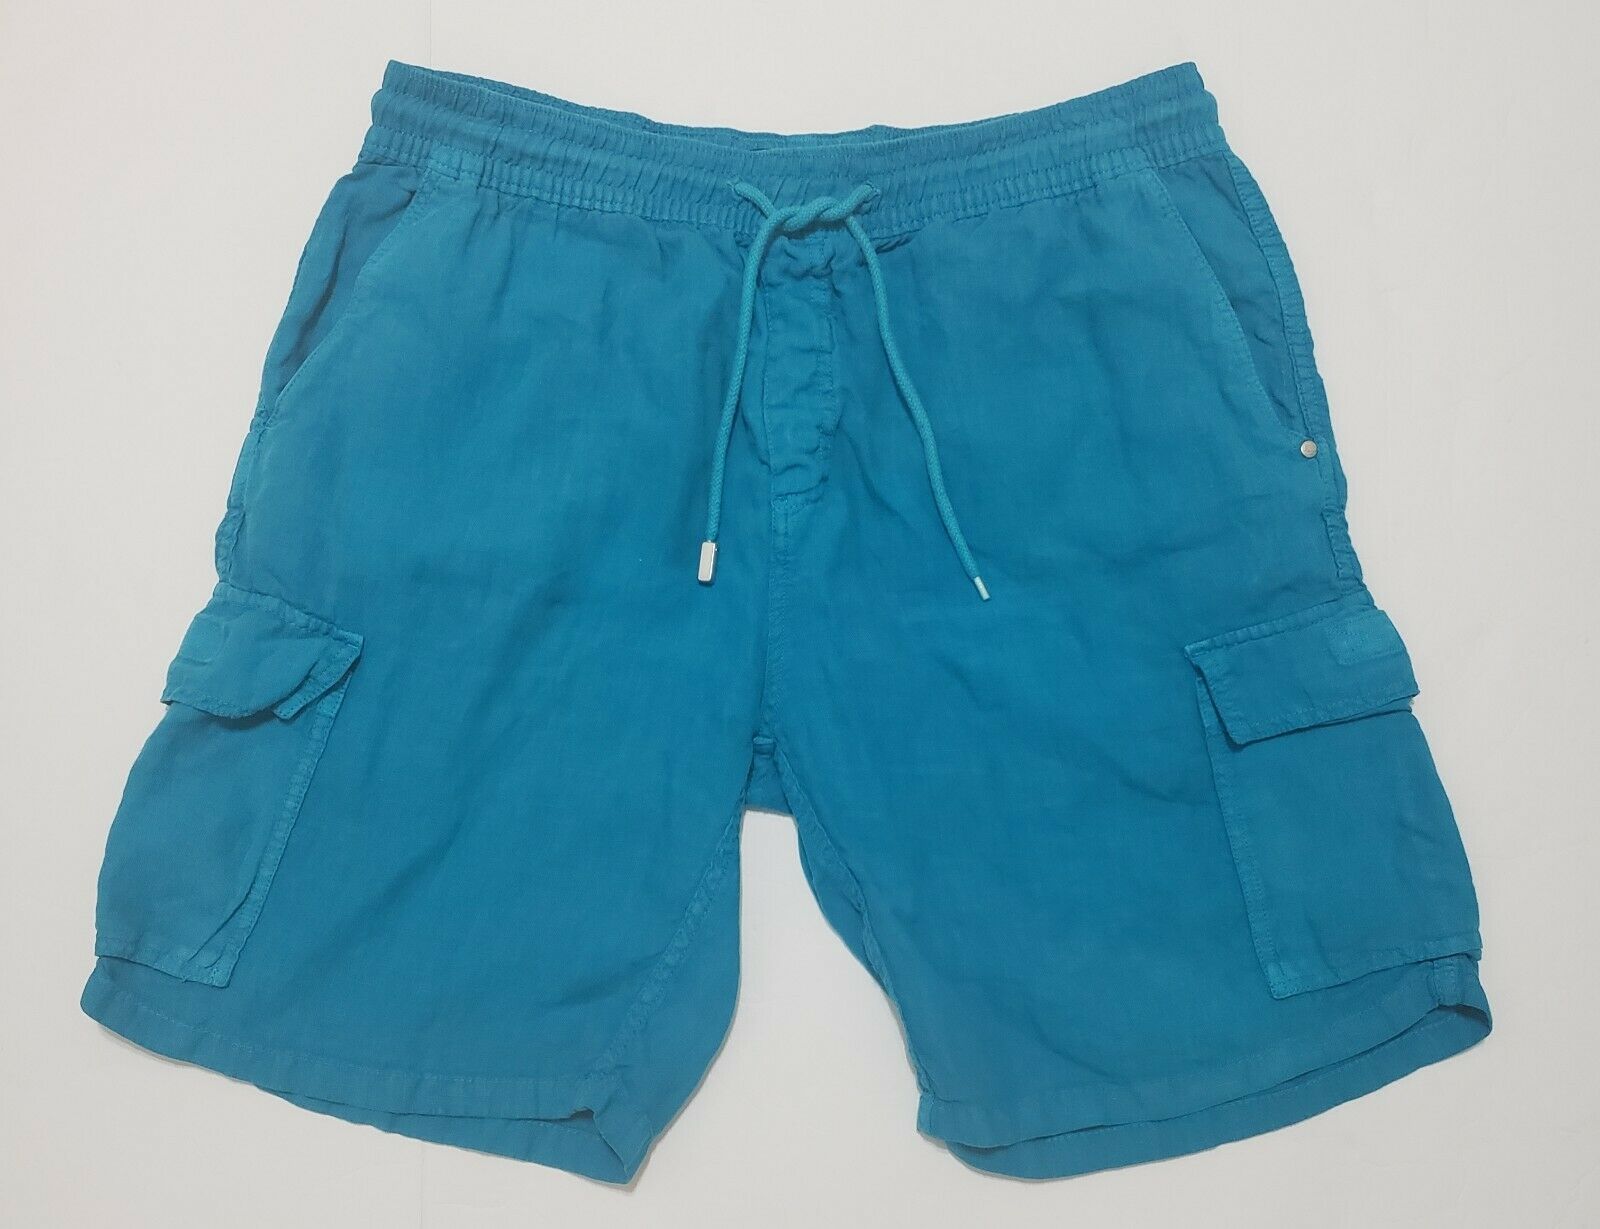 Vilebrequin Mens Swim Board Shorts Trunks Drawstring Cargo bluee Size XL